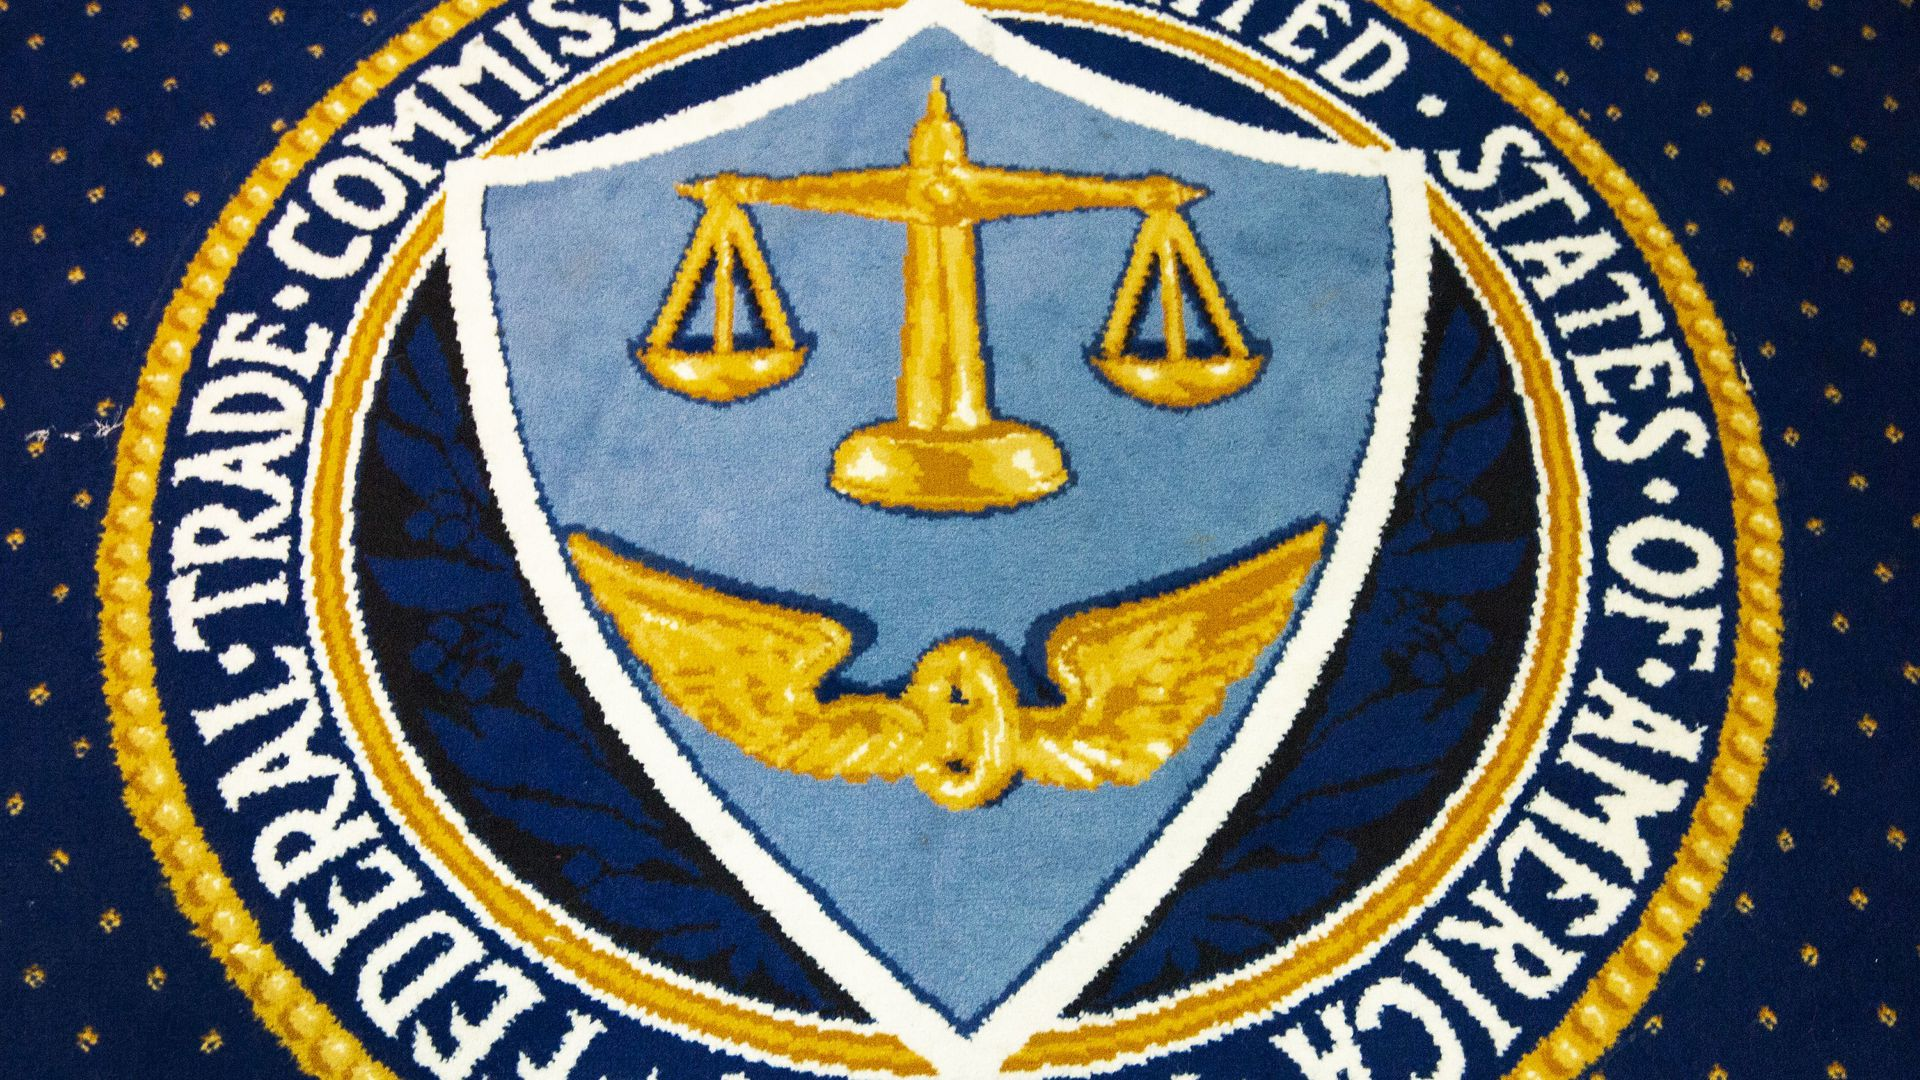 The seal of the Federal Trade Commission.